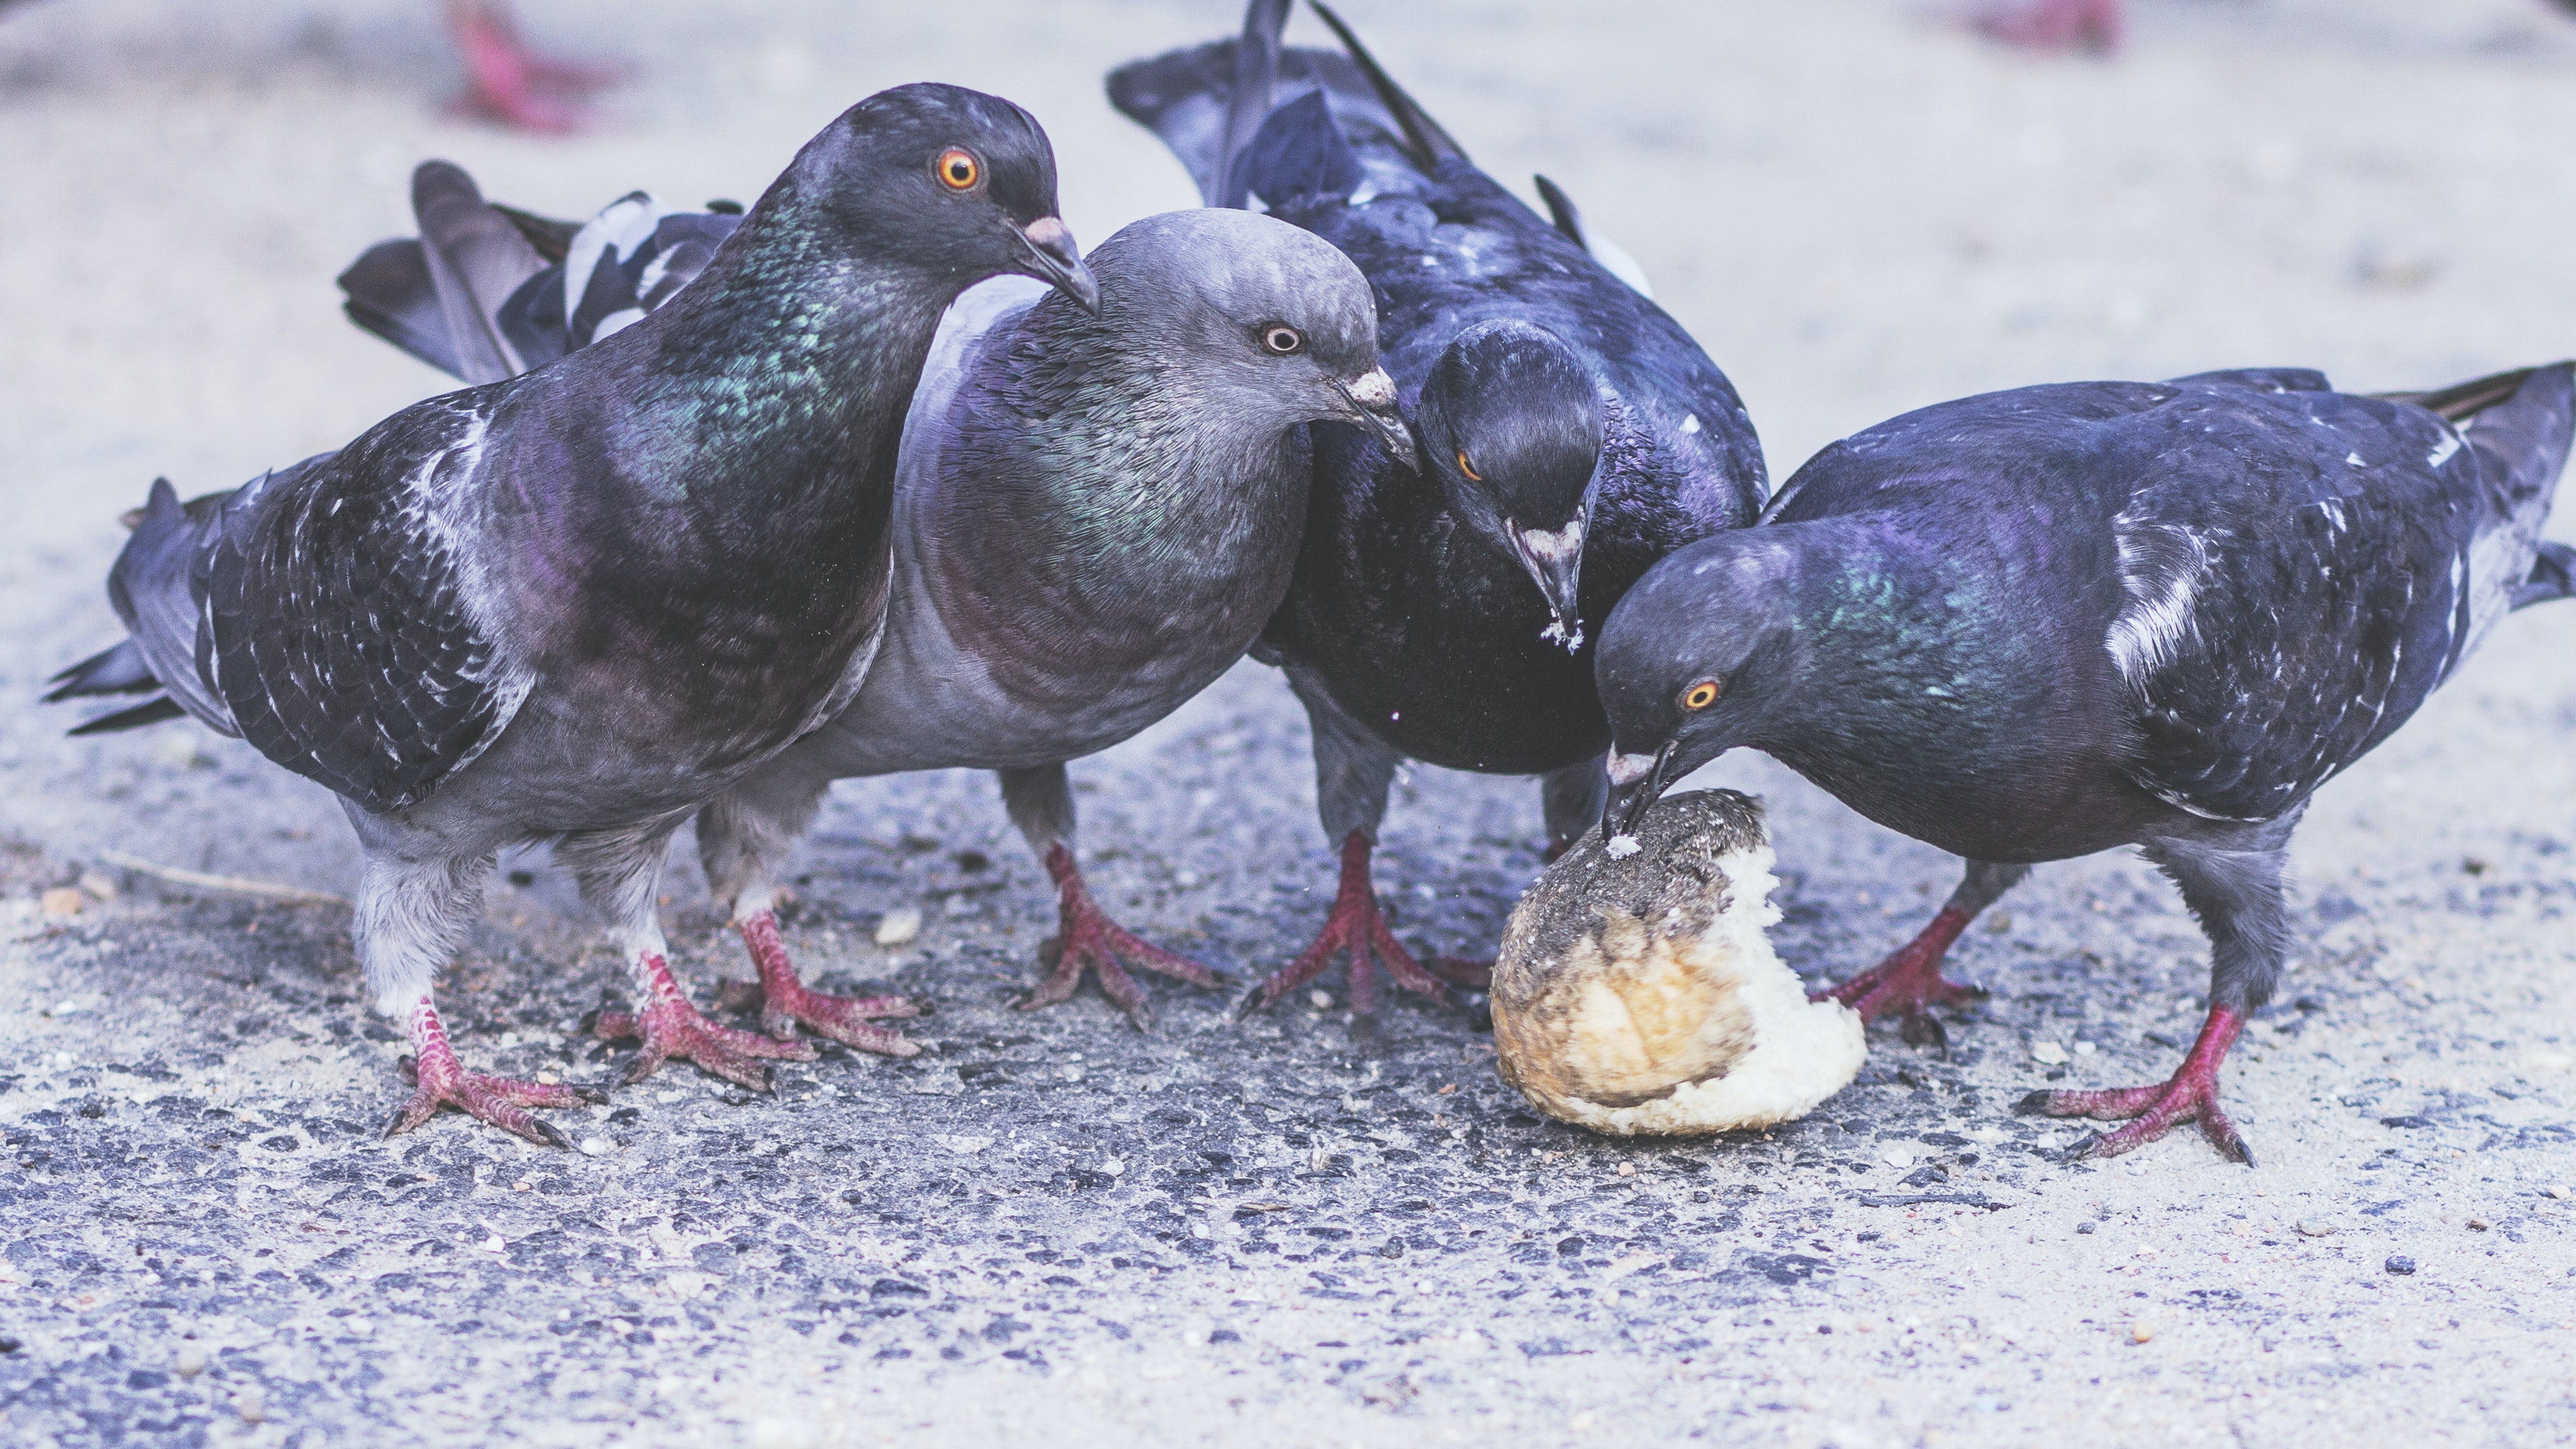 Flock of pigeons peck at a littered piece of bread in the city